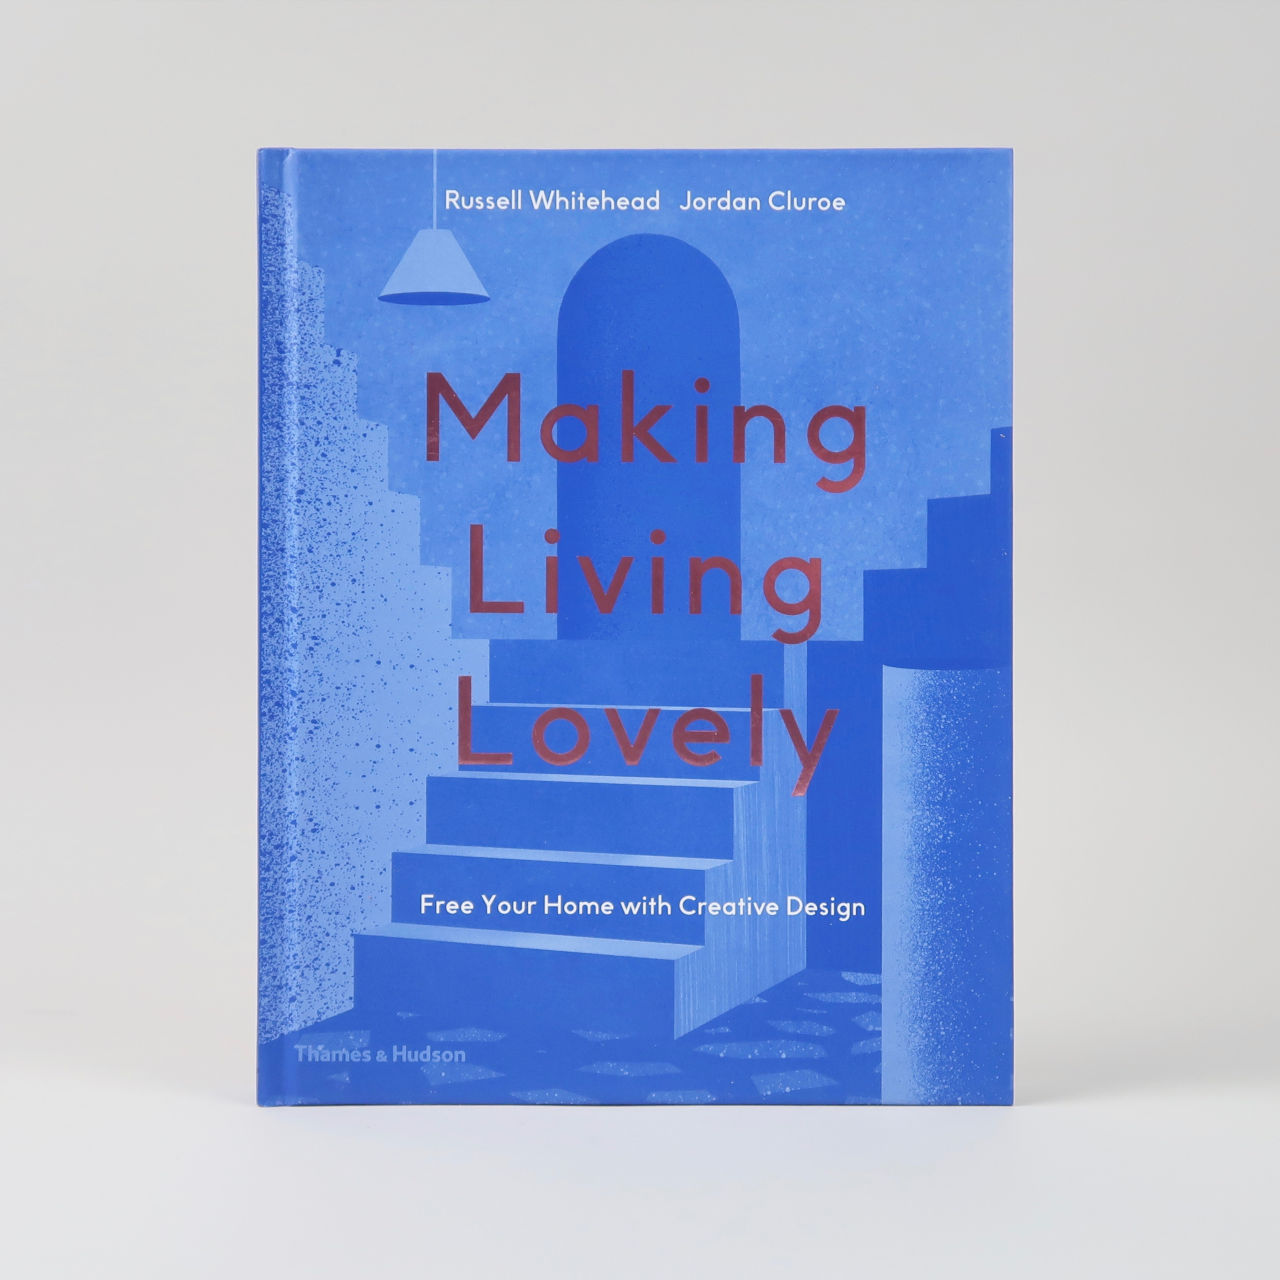 Making Living Lovely - Russell Whitehead & Jordan Cluroe